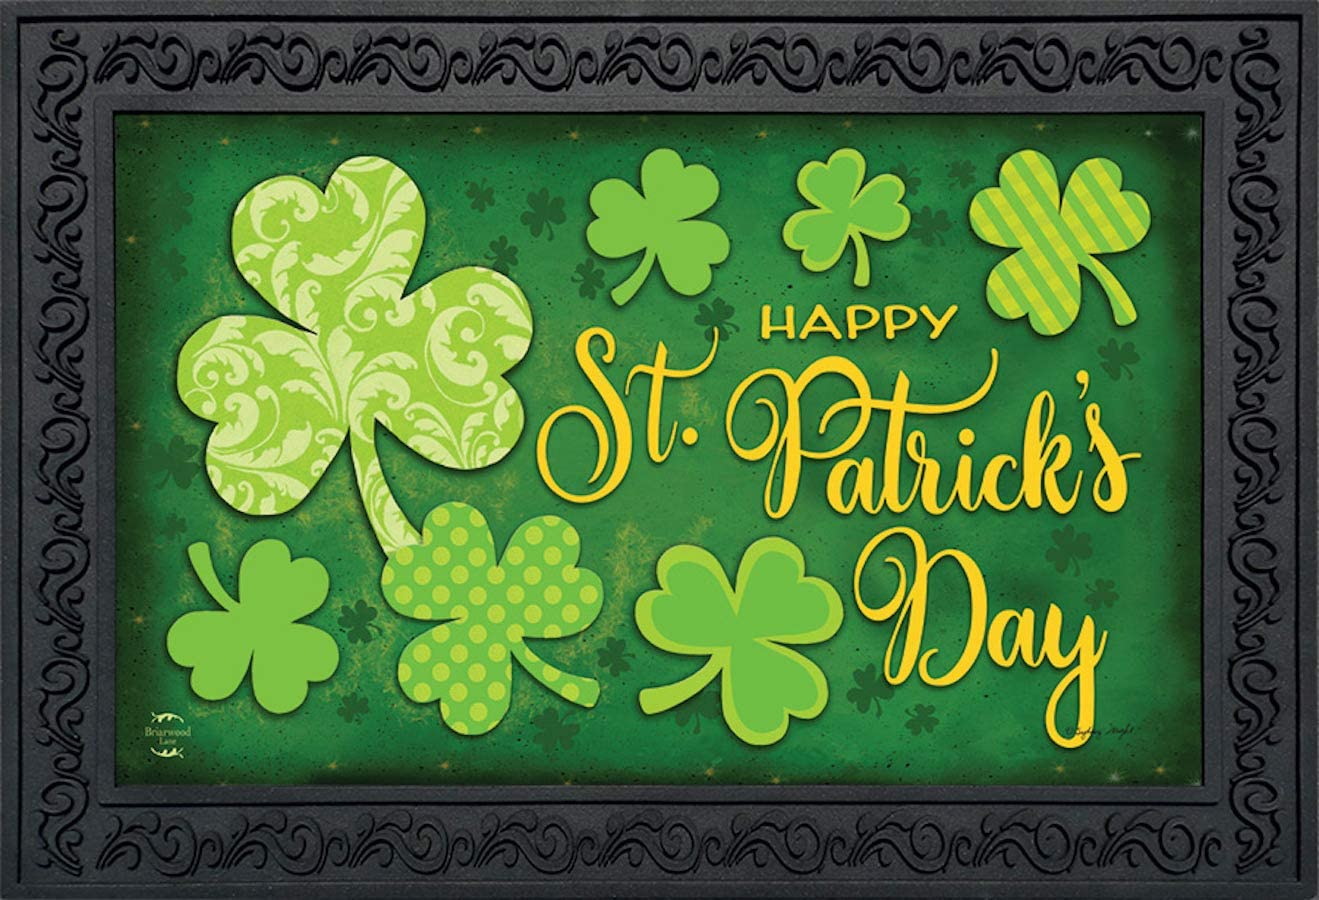 Briarwood Lane Lucky Shamrocks St. Patrick s Day Doormat Clovers Indoor Outdoor 18 x 30